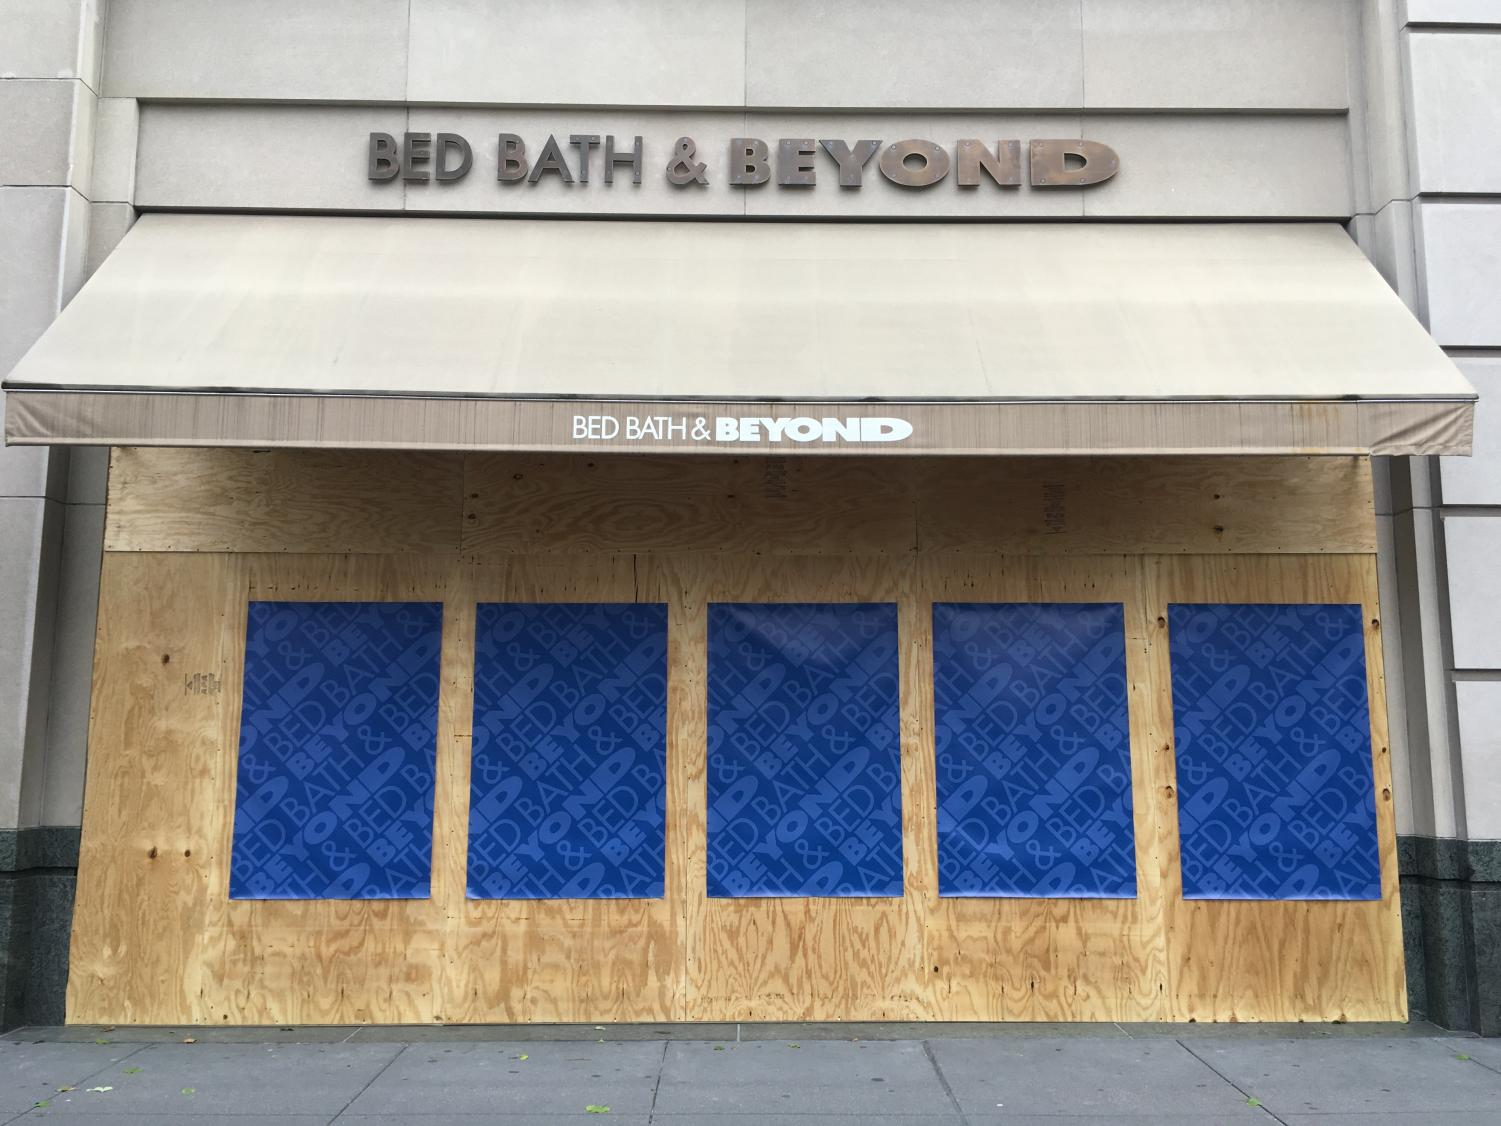 Bed, Bath, & Beyond with a boarded up storefront covered in branded posters for the store